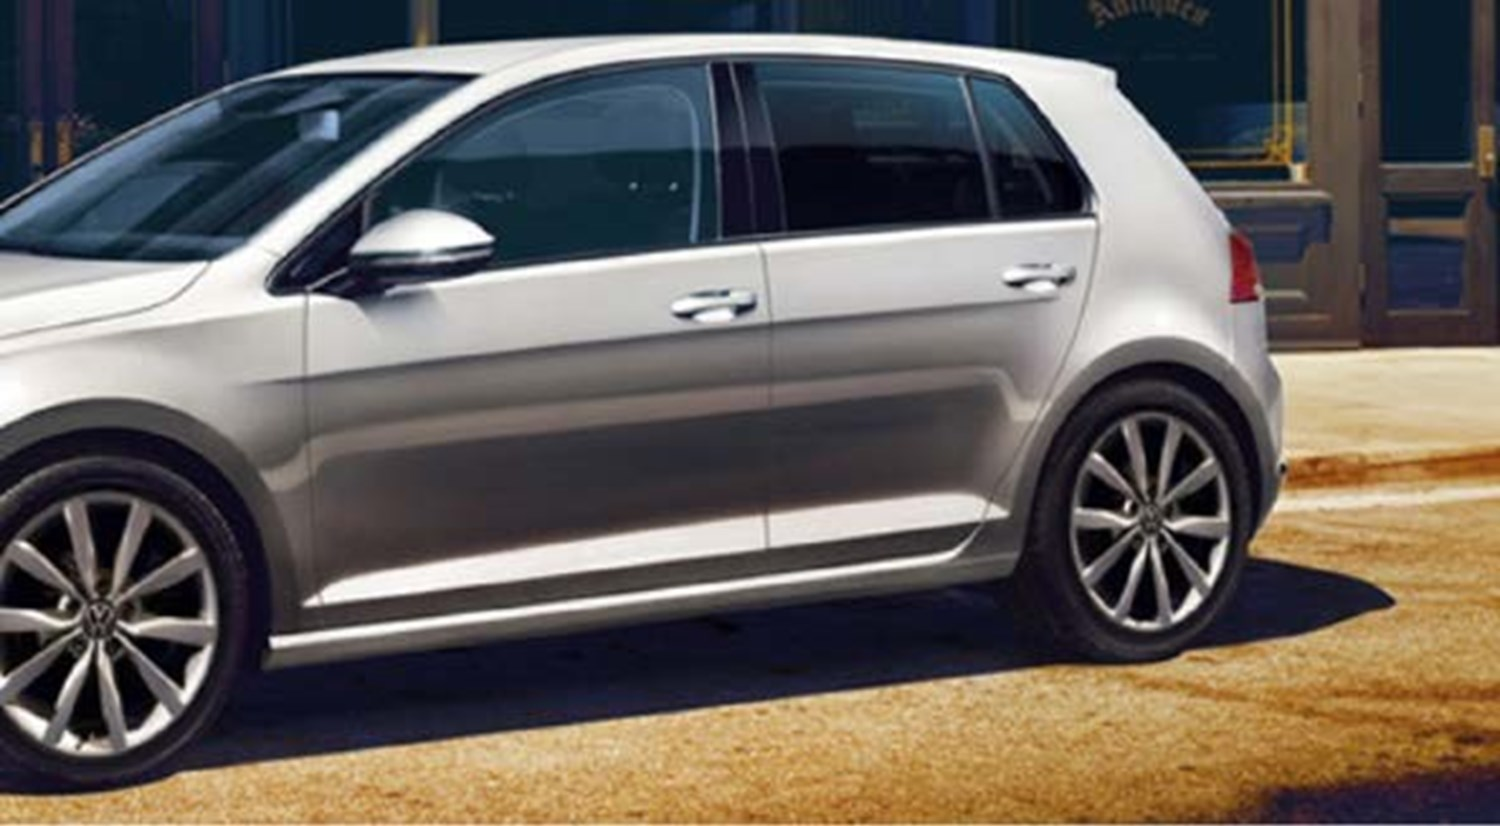 Silver Volkswagen Polo from the side